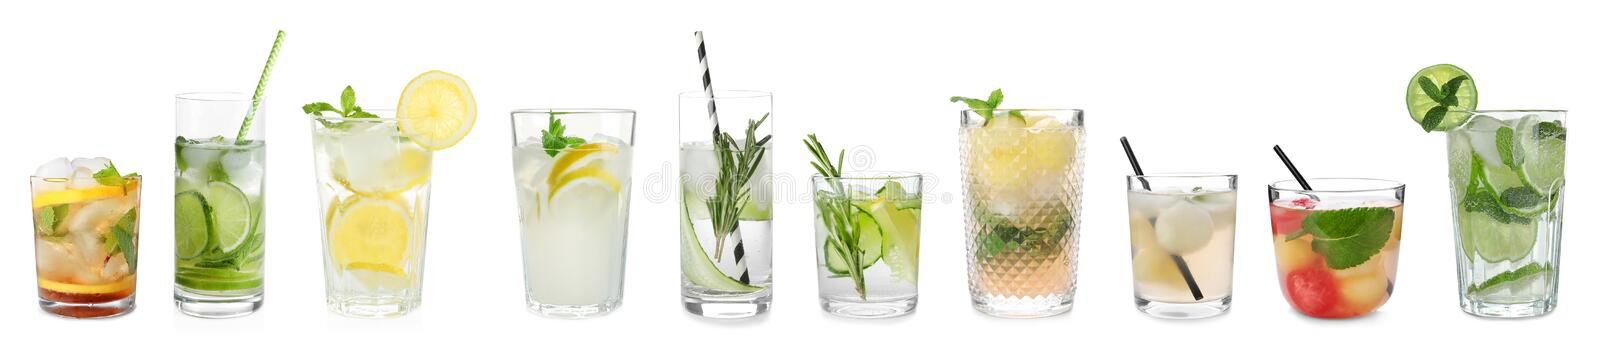 Metta dei cocktail deliziosi differenti fotografia stock